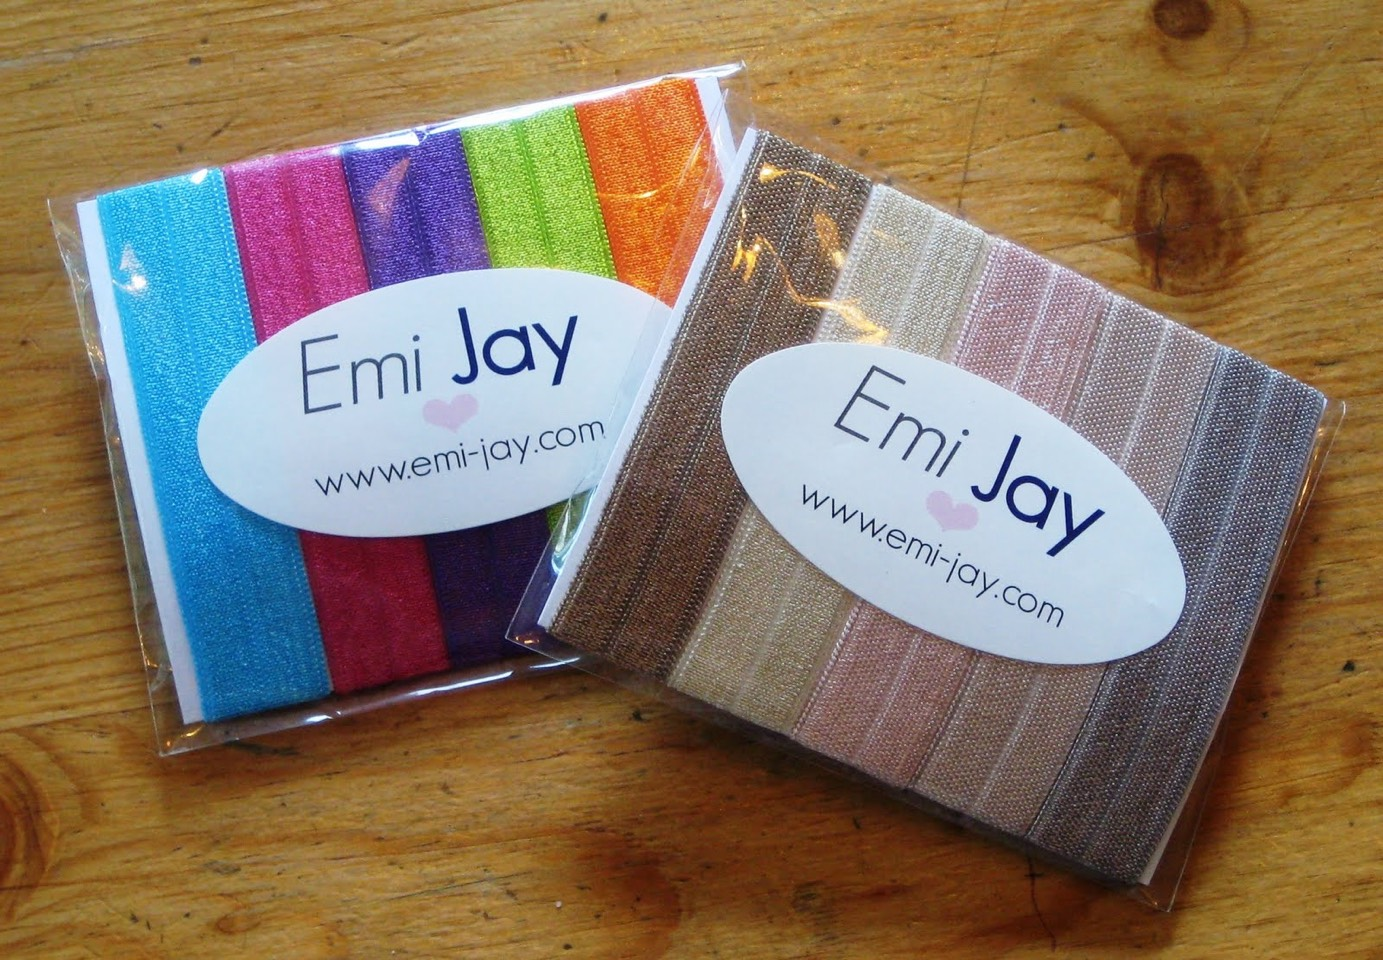 Hair ties Emi Jays are great because they don't hurt taking them out.